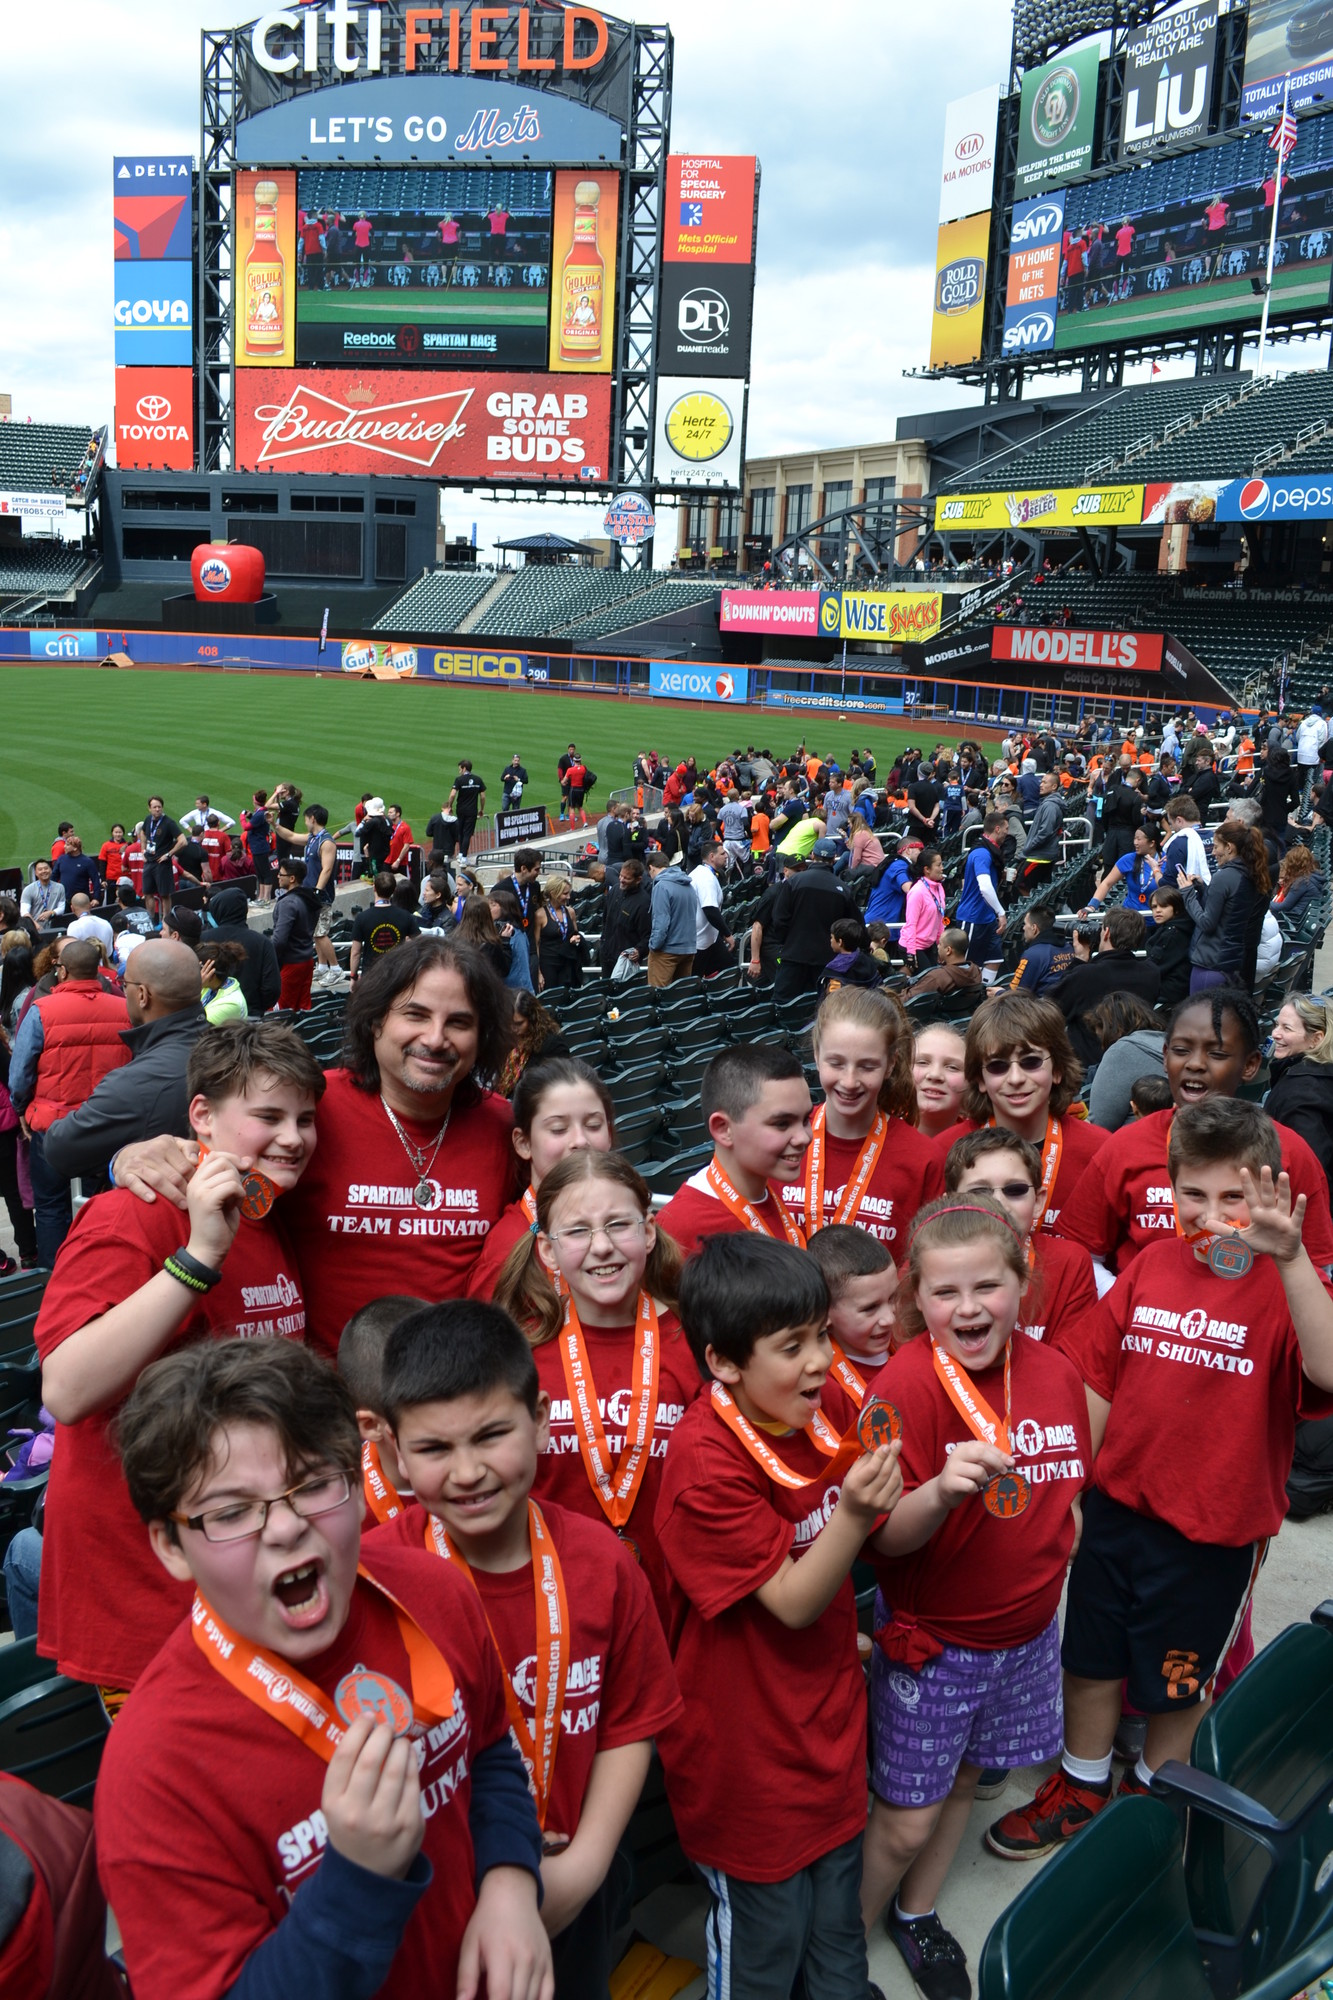 A group of 16 Baldwin karate students used their legs for more than kicking last week. The energetic youngsters ran a 1-mile obstacle course that snaked through CitiField, home of the Mets, and included the playing surface and other areas normally off-limits to non-players.